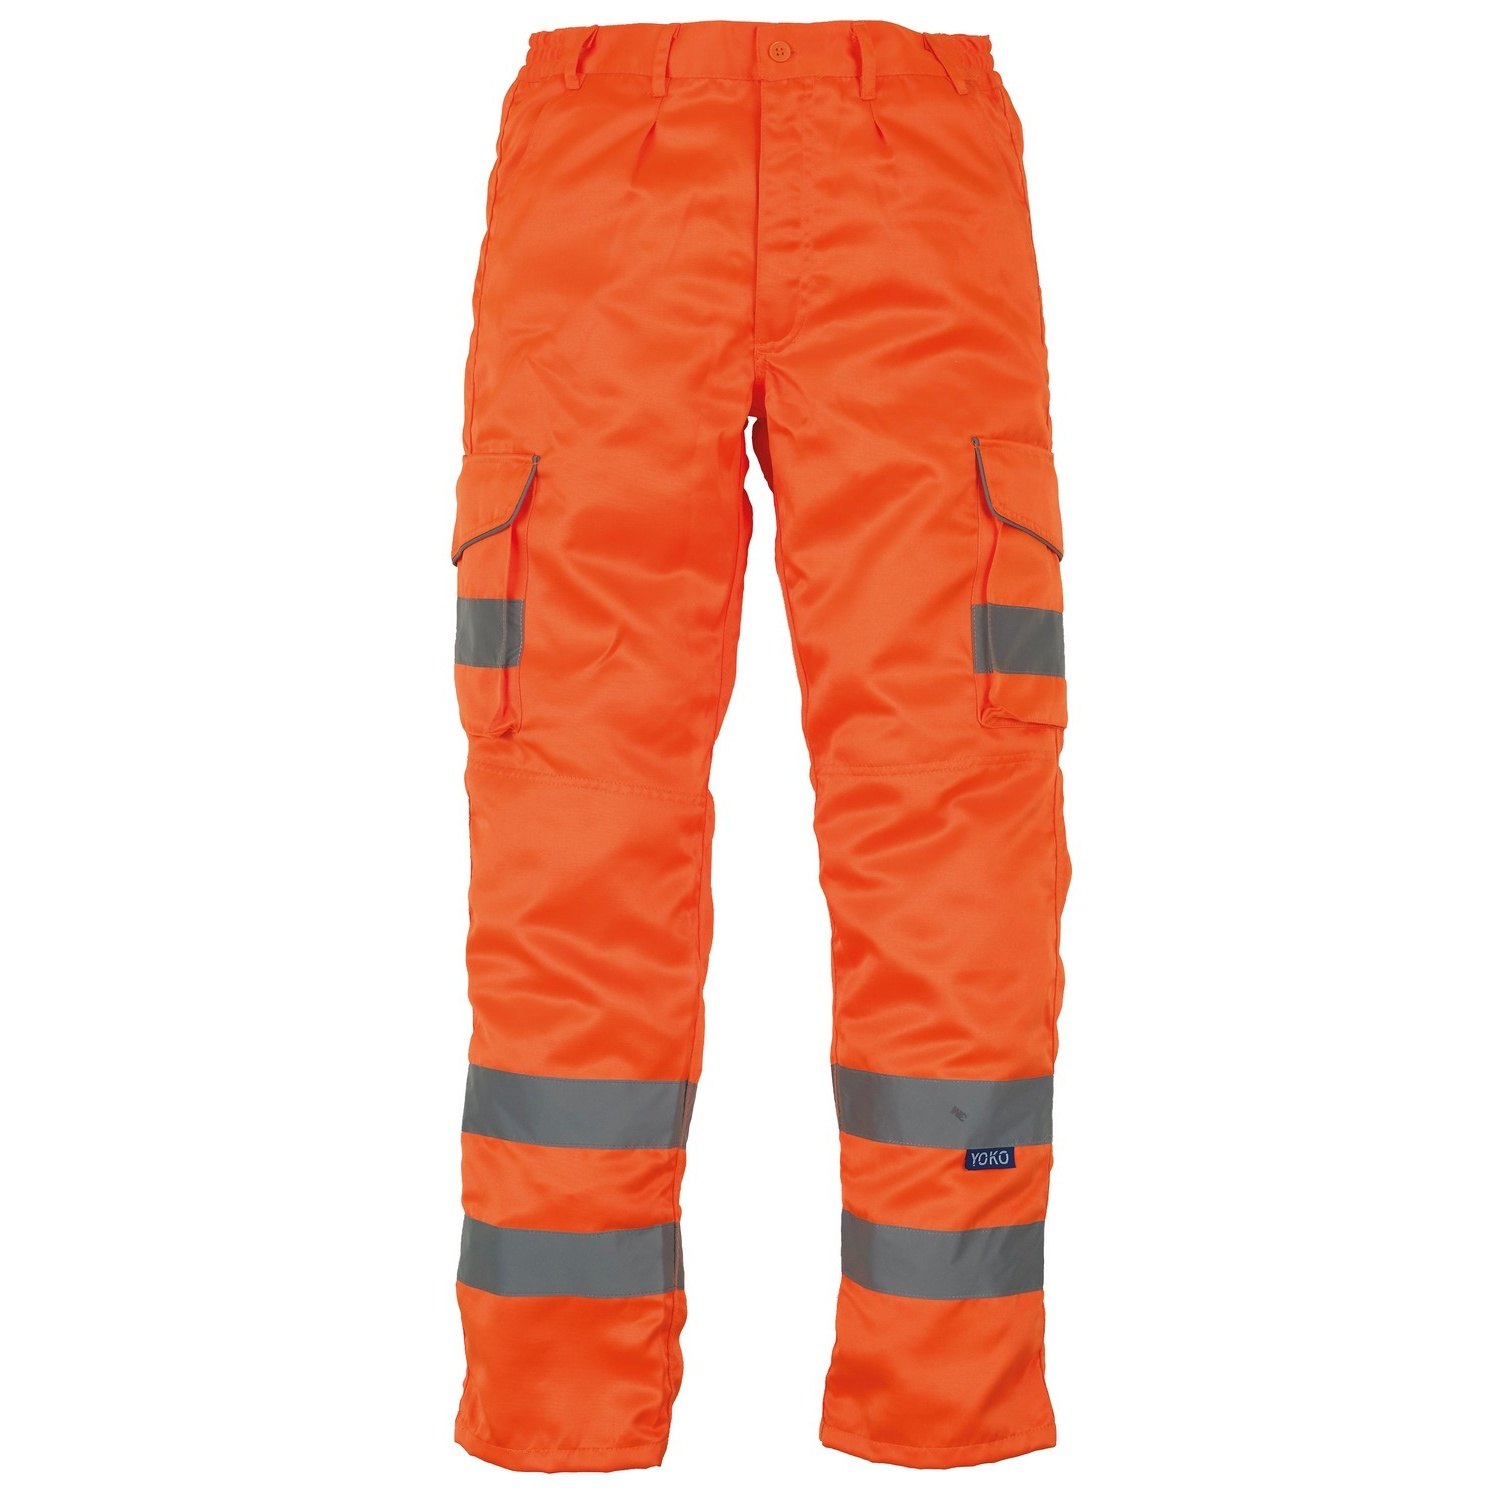 Yoko Mens Hi Vis Polycotton Cargo Trousers With Knee Pad Pockets (Pack of 2) (32L) (Orange)